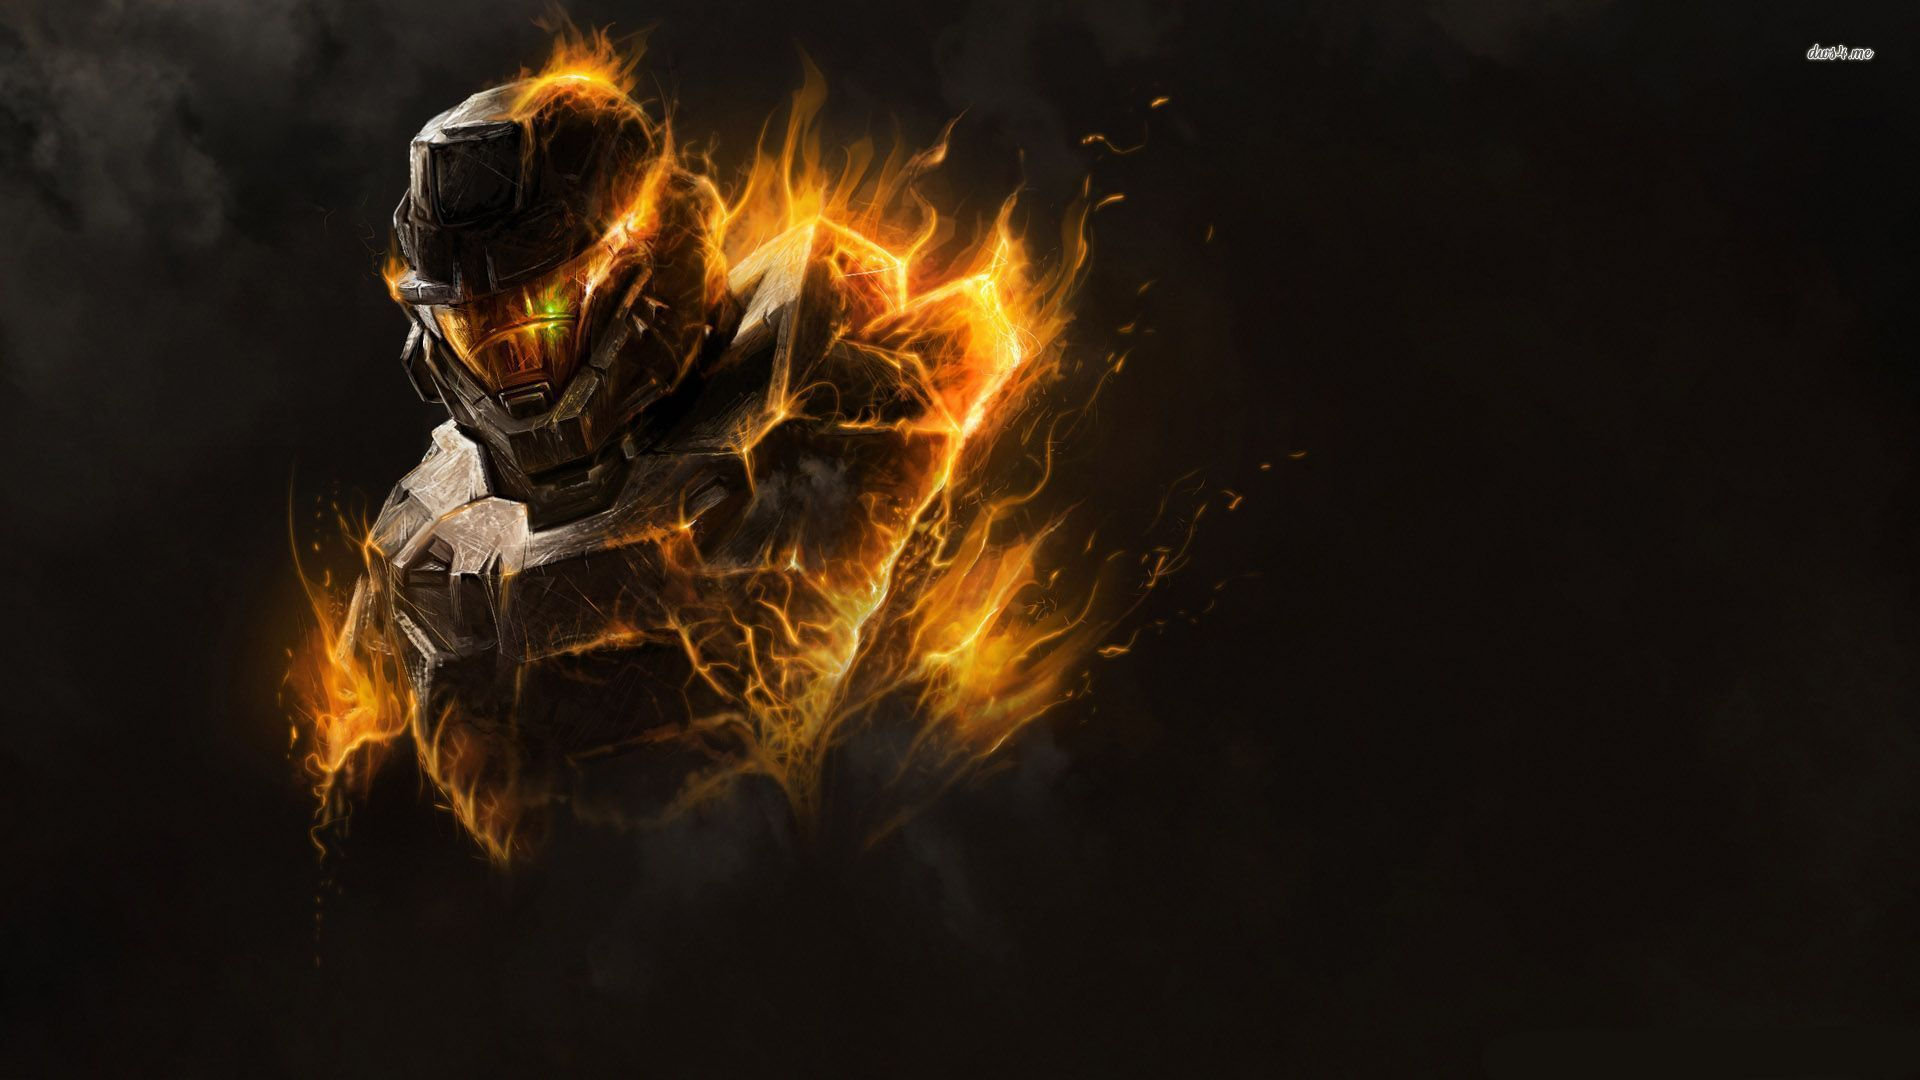 Epic Halo Wallpapers Top Free Epic Halo Backgrounds Wallpaperaccess